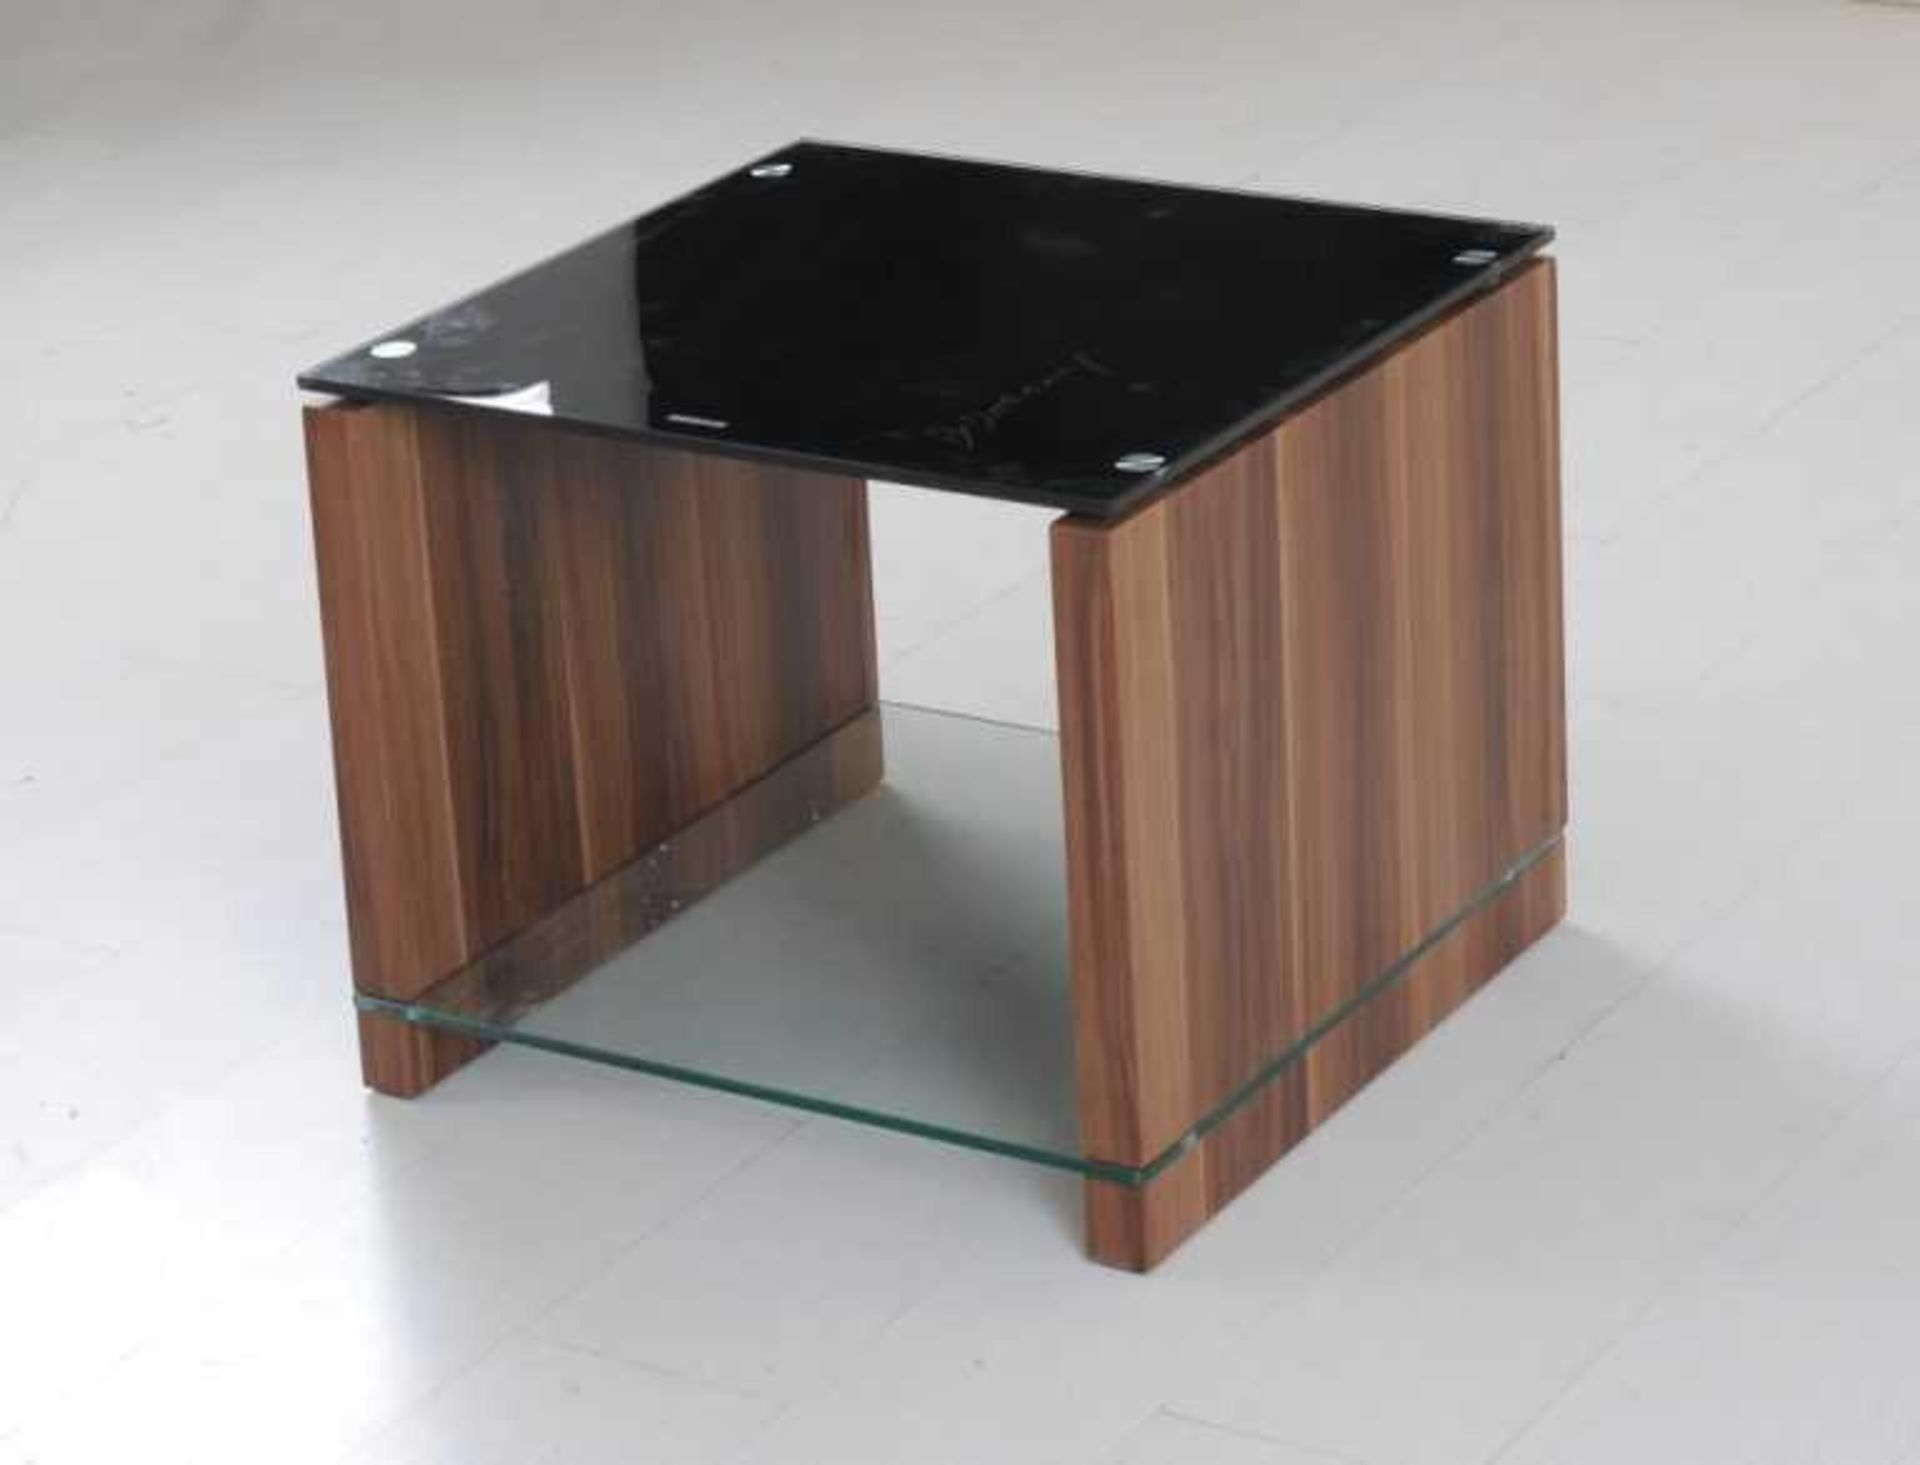 RRP £230 - Boxed 'Atlanta' End Table In Walnut Finish With Black Glass Top (Appraisals Available